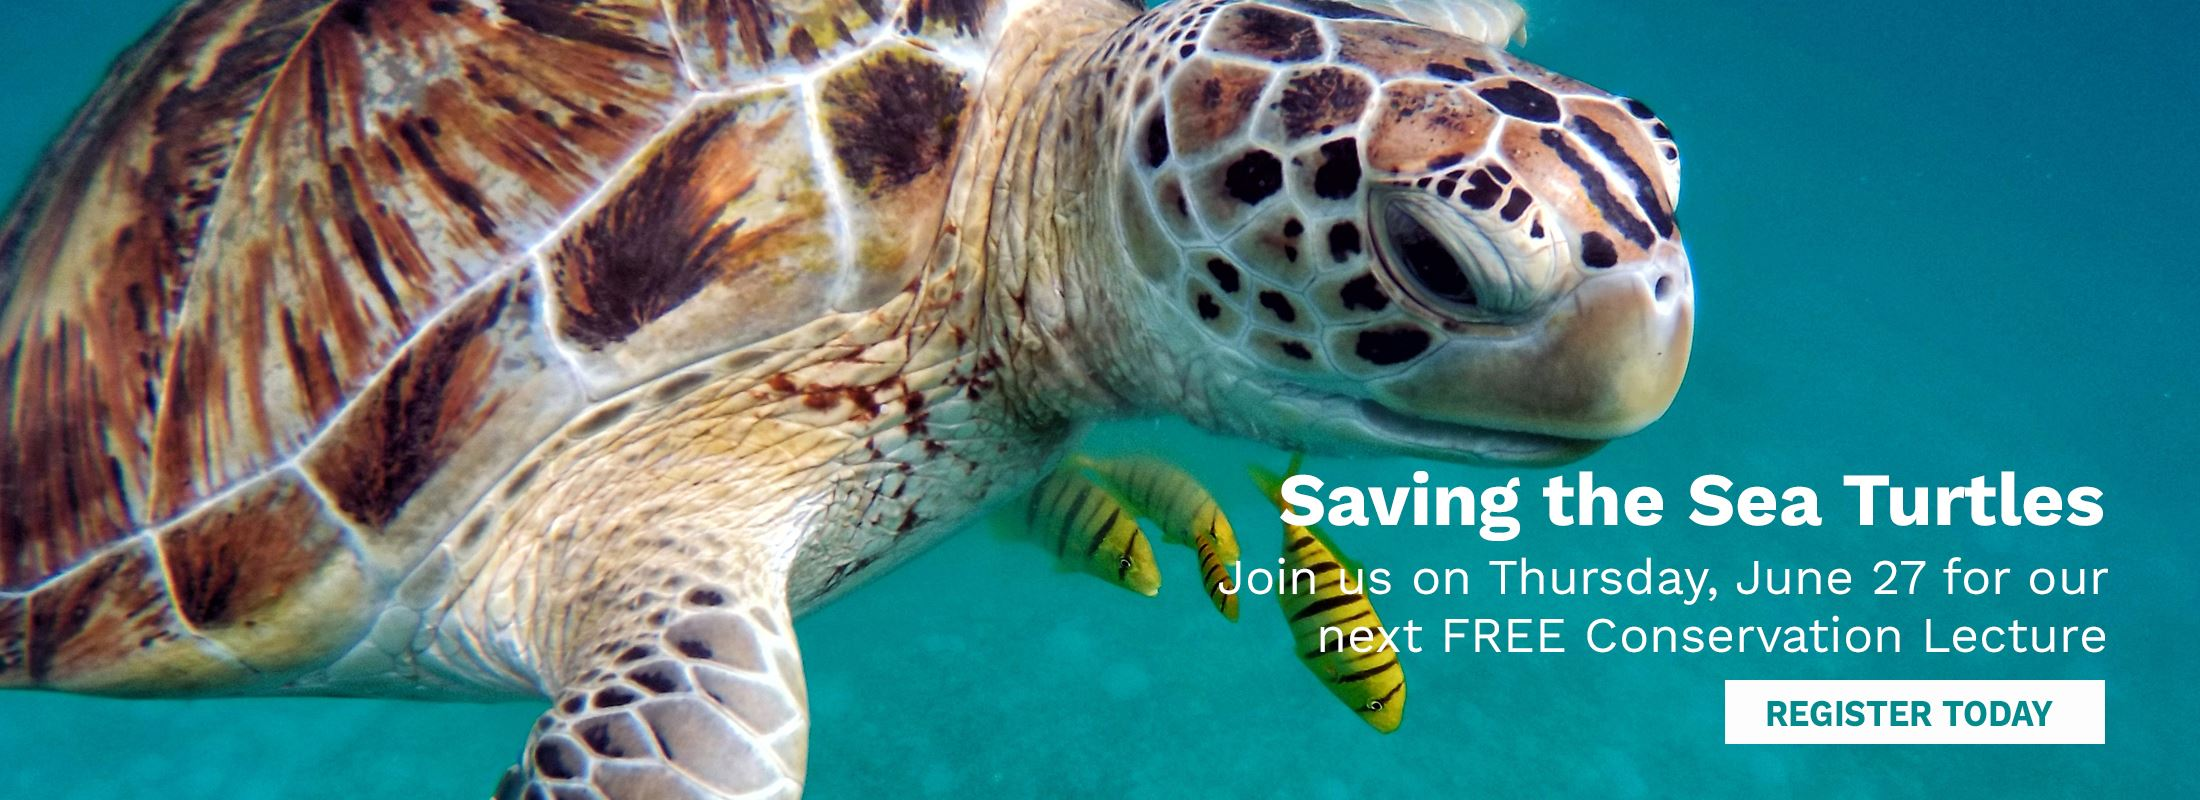 Photo of sea turtle with caption Saving the Sea Turtles. Join us on Thursday, June 27 for a free lec